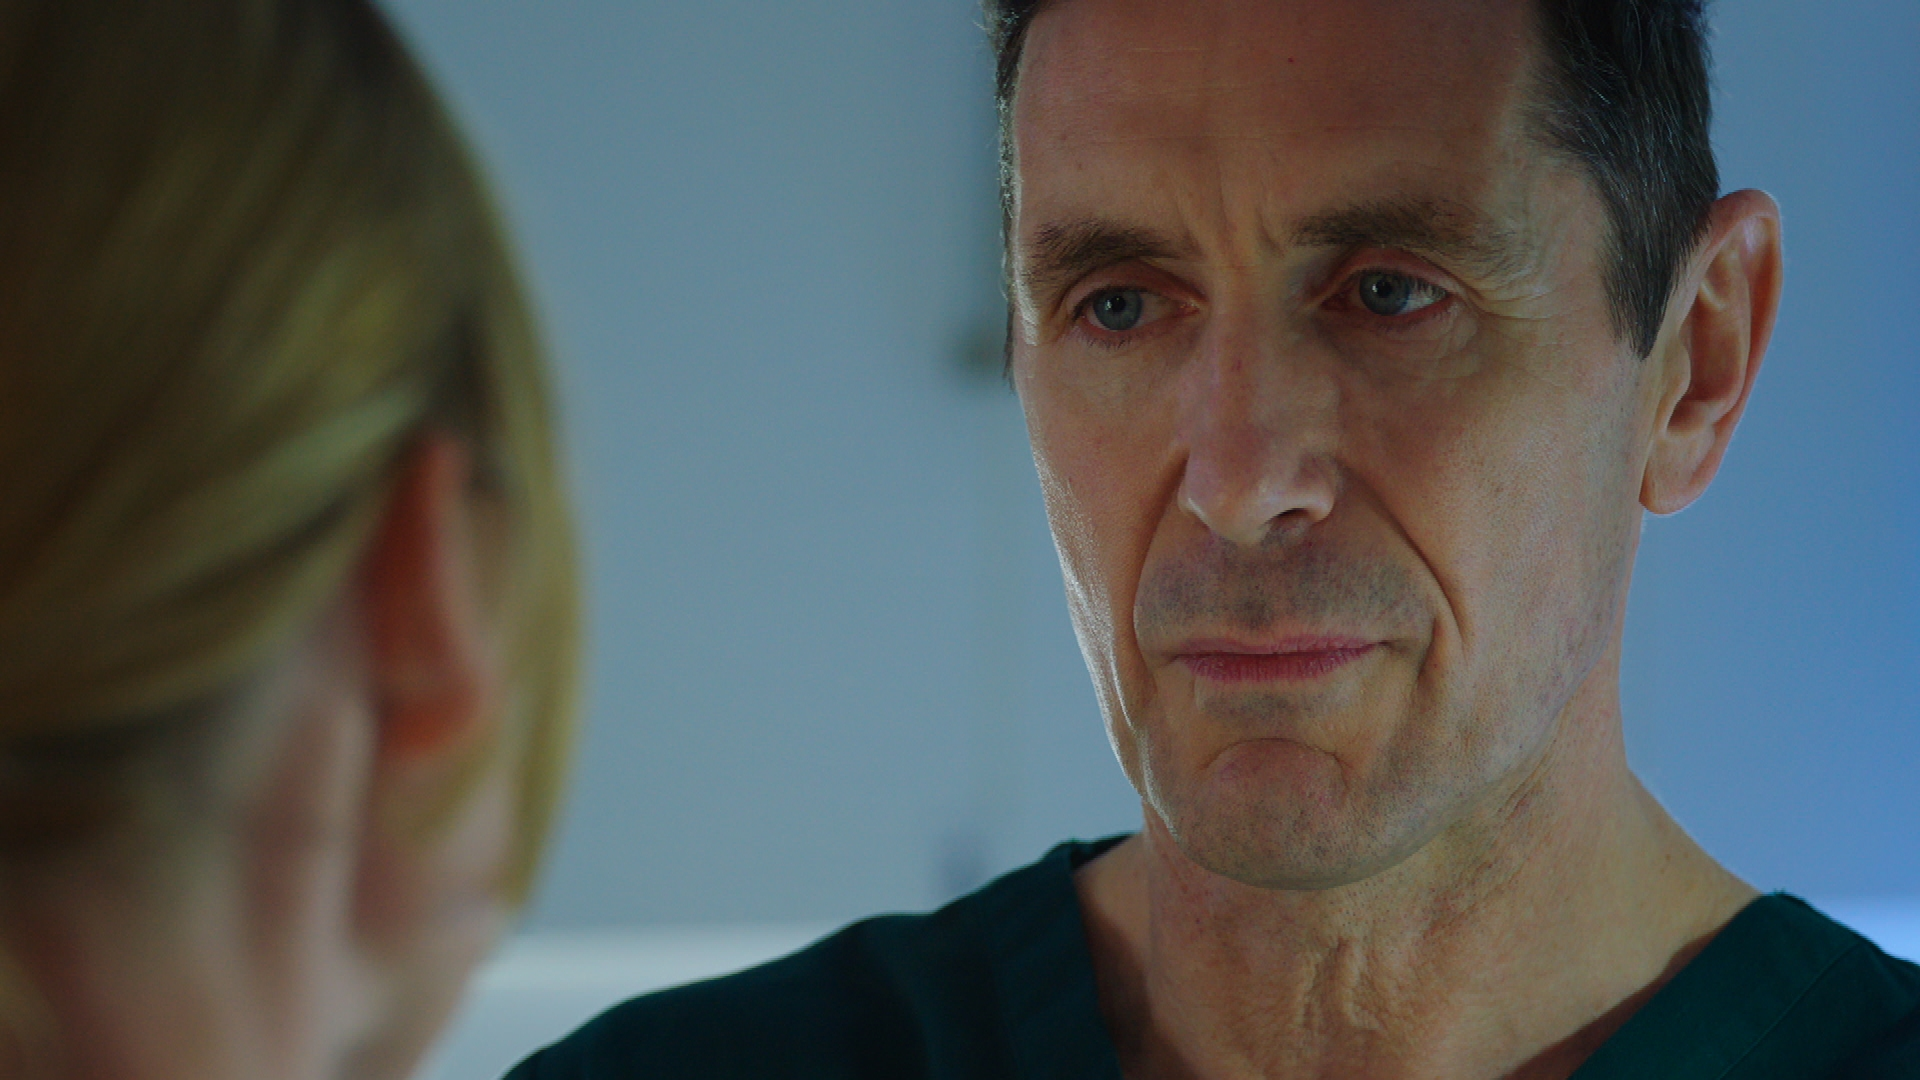 7 Holby City spoilers: Dramatic showdown as Gaskell's crimes are exposed